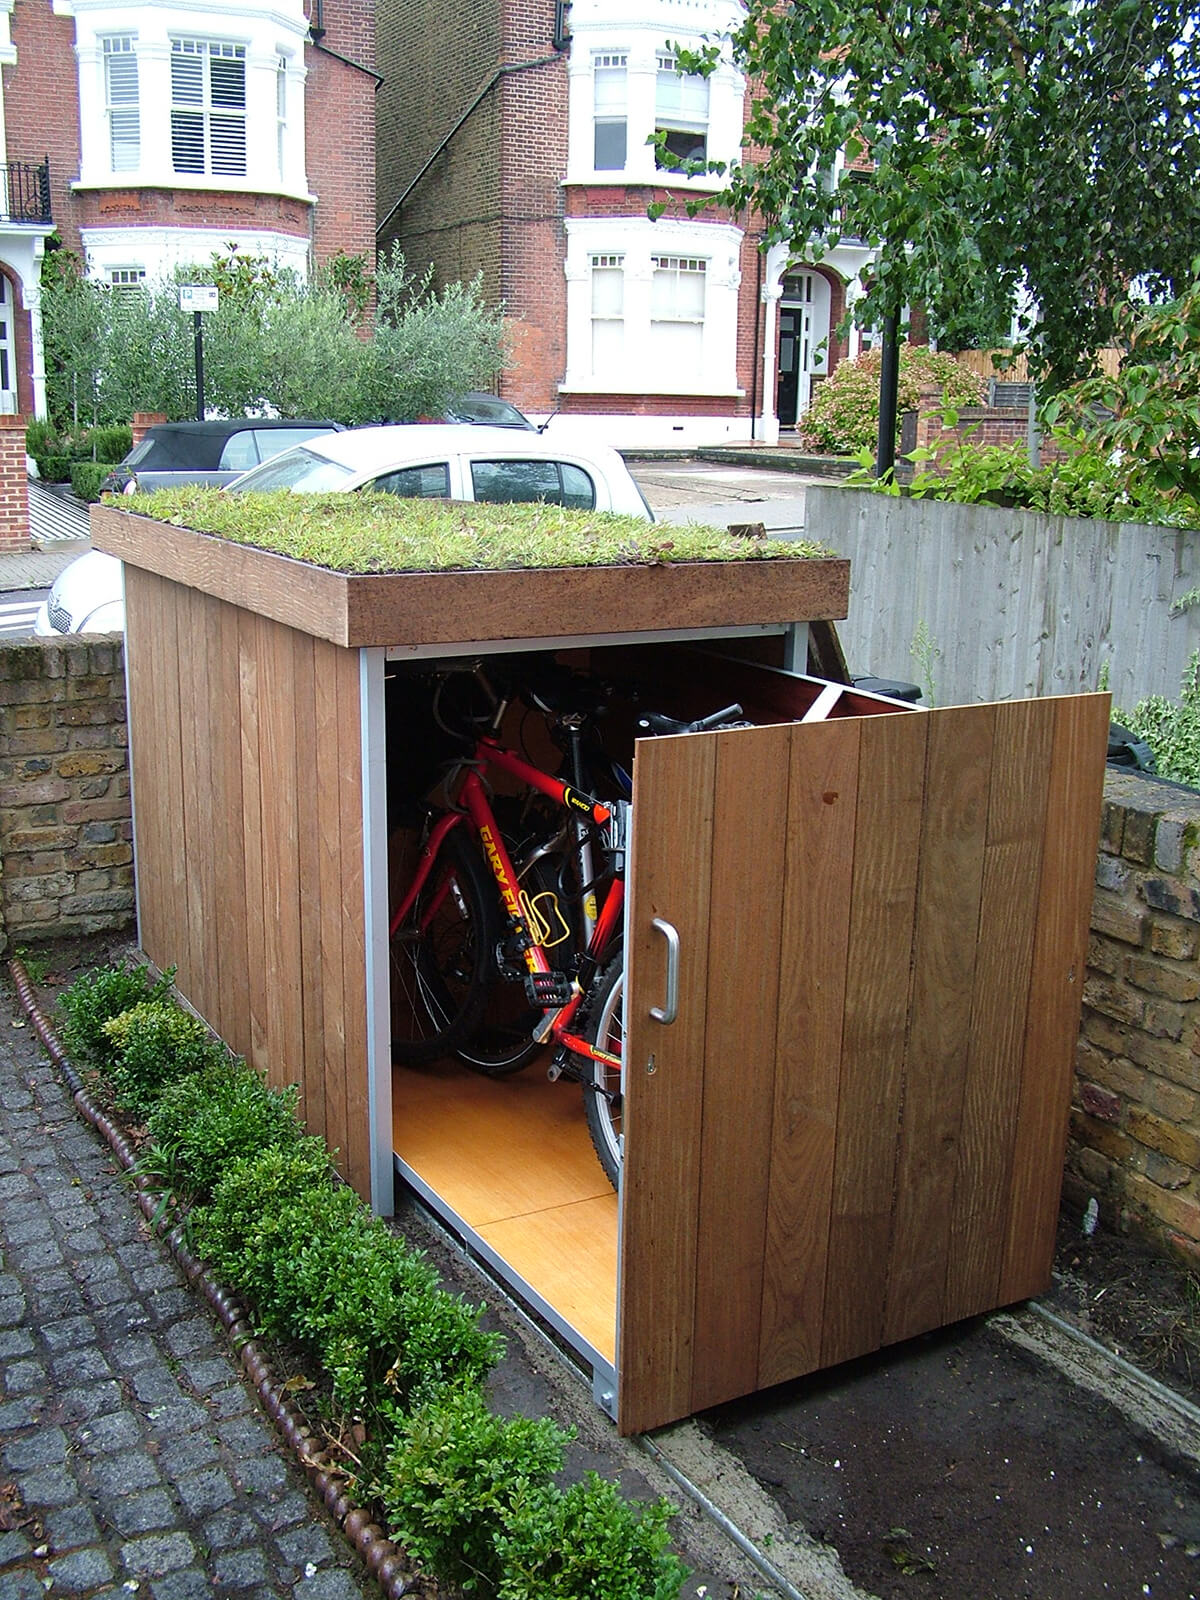 a hideaway storage space for smaller objects - Garden Sheds Small